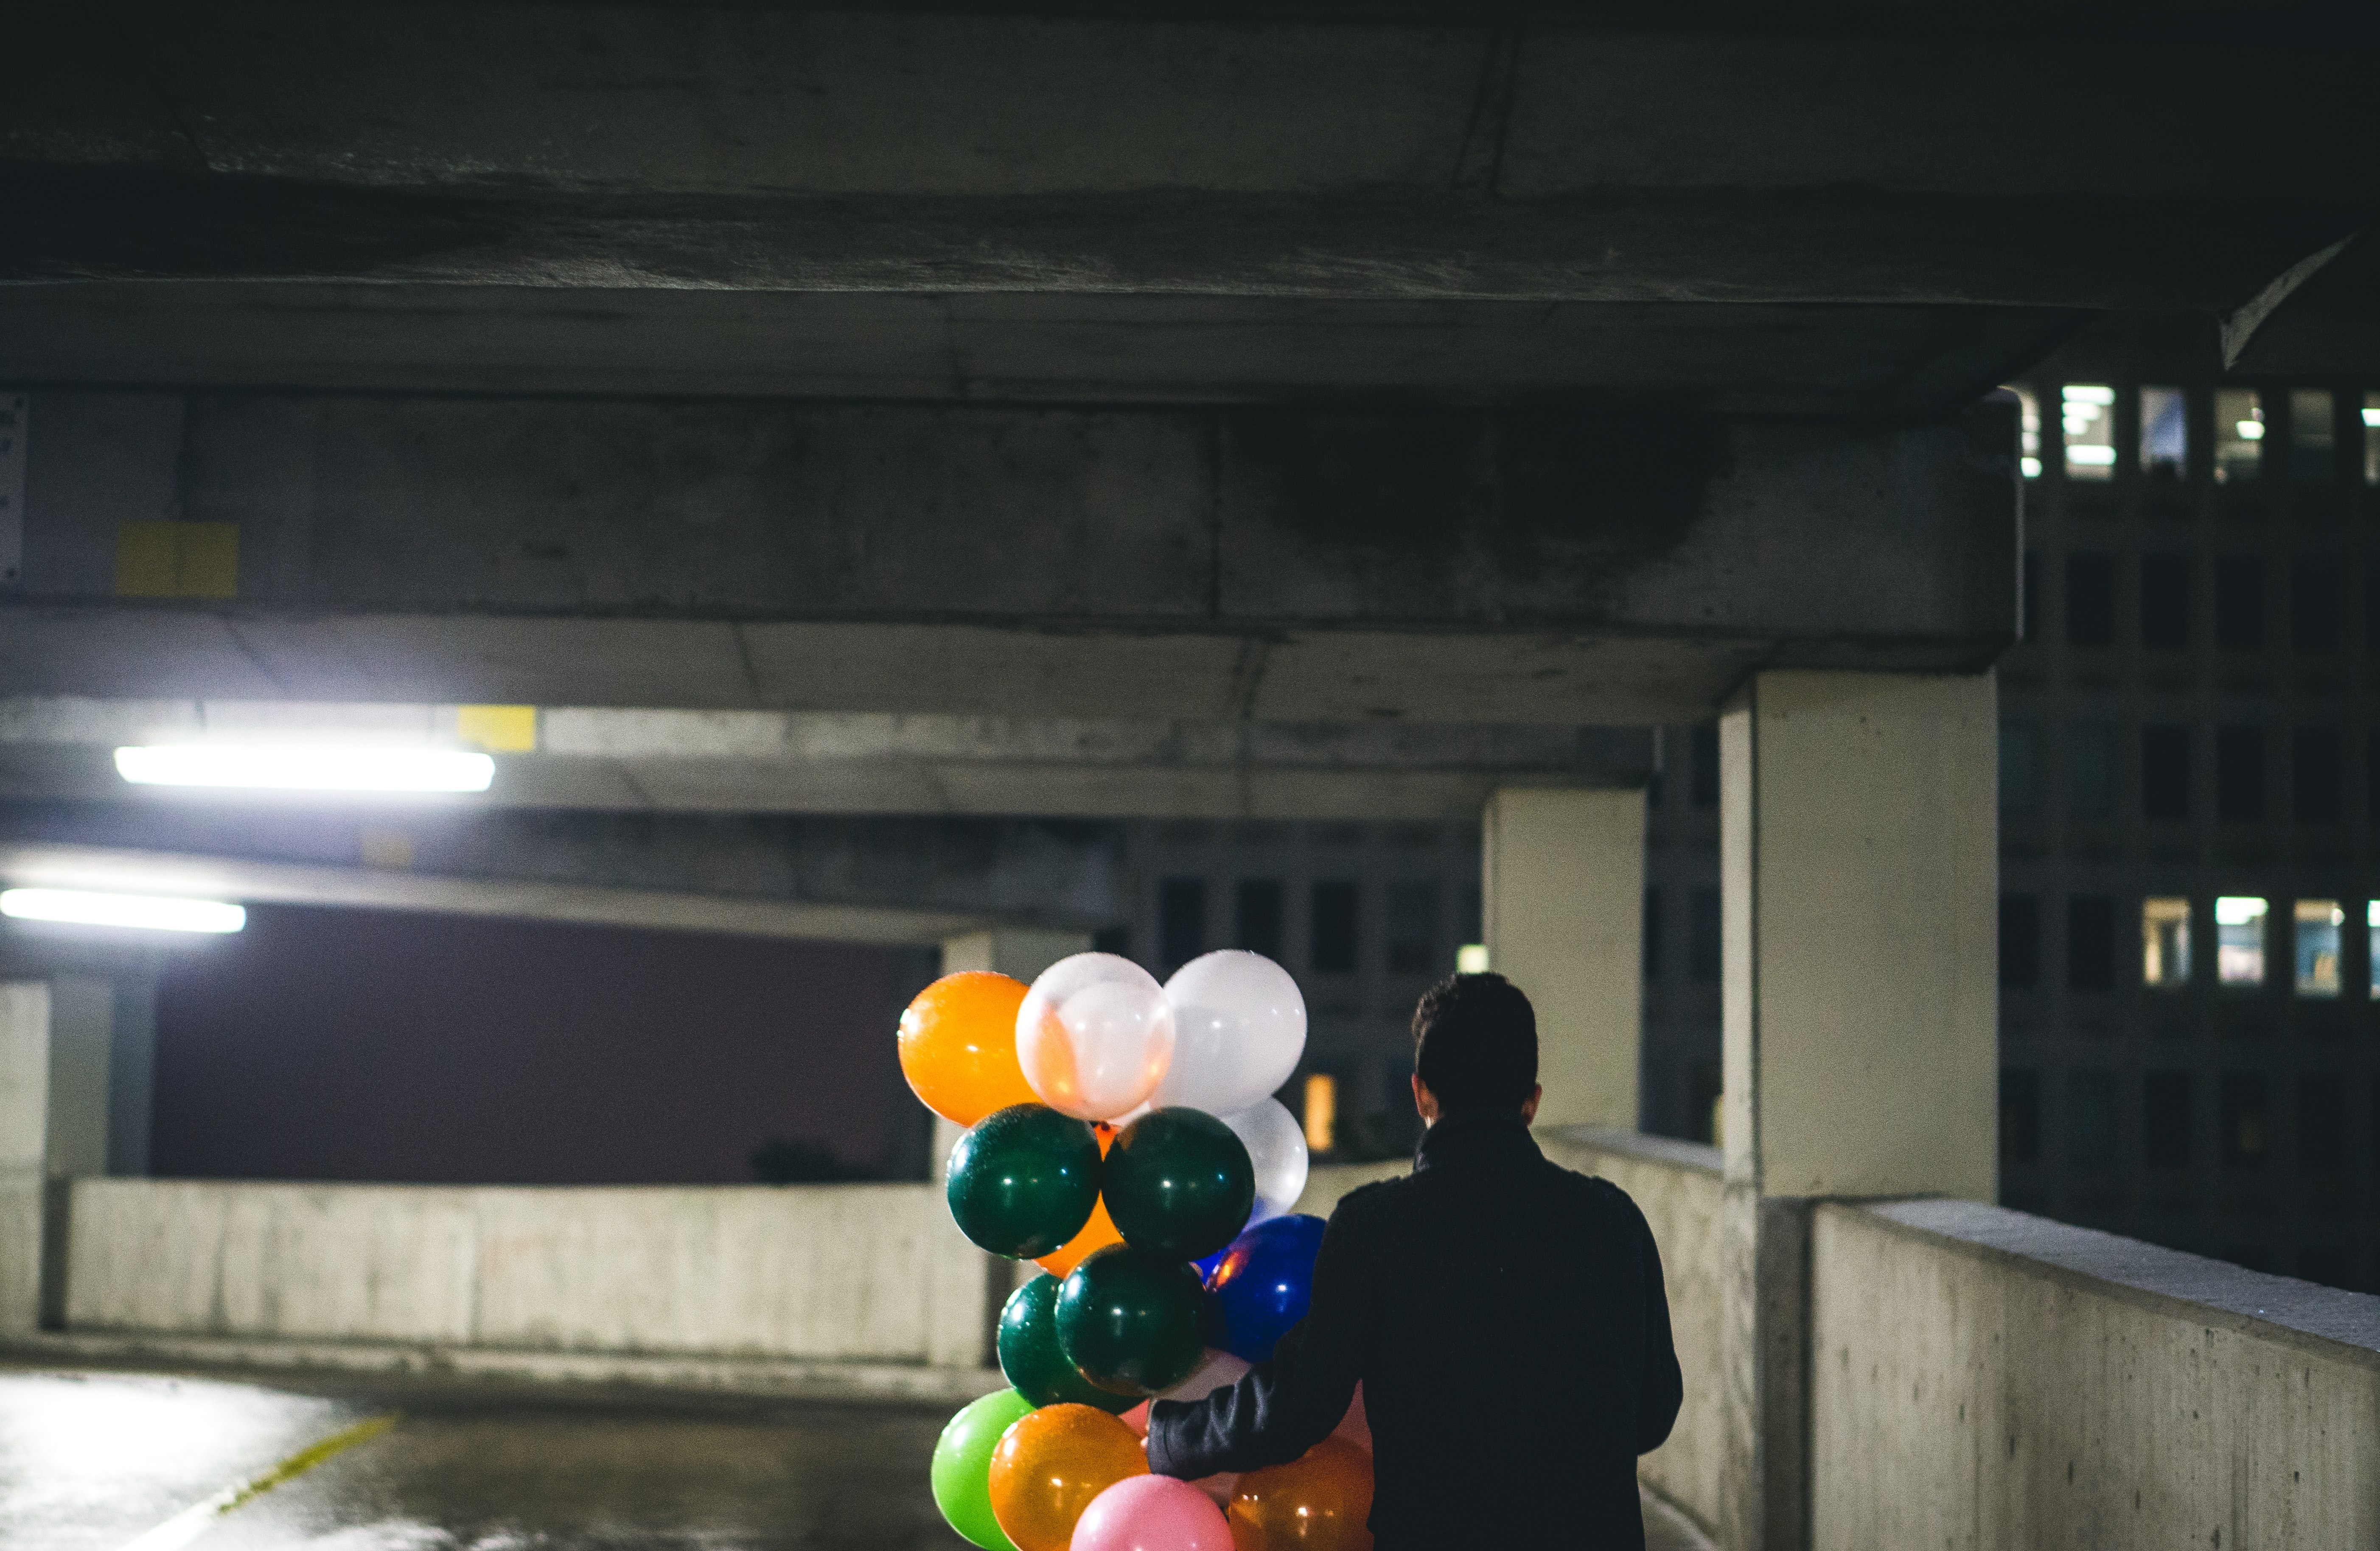 Person carrying colorful birthday balloons through a dark parking lot